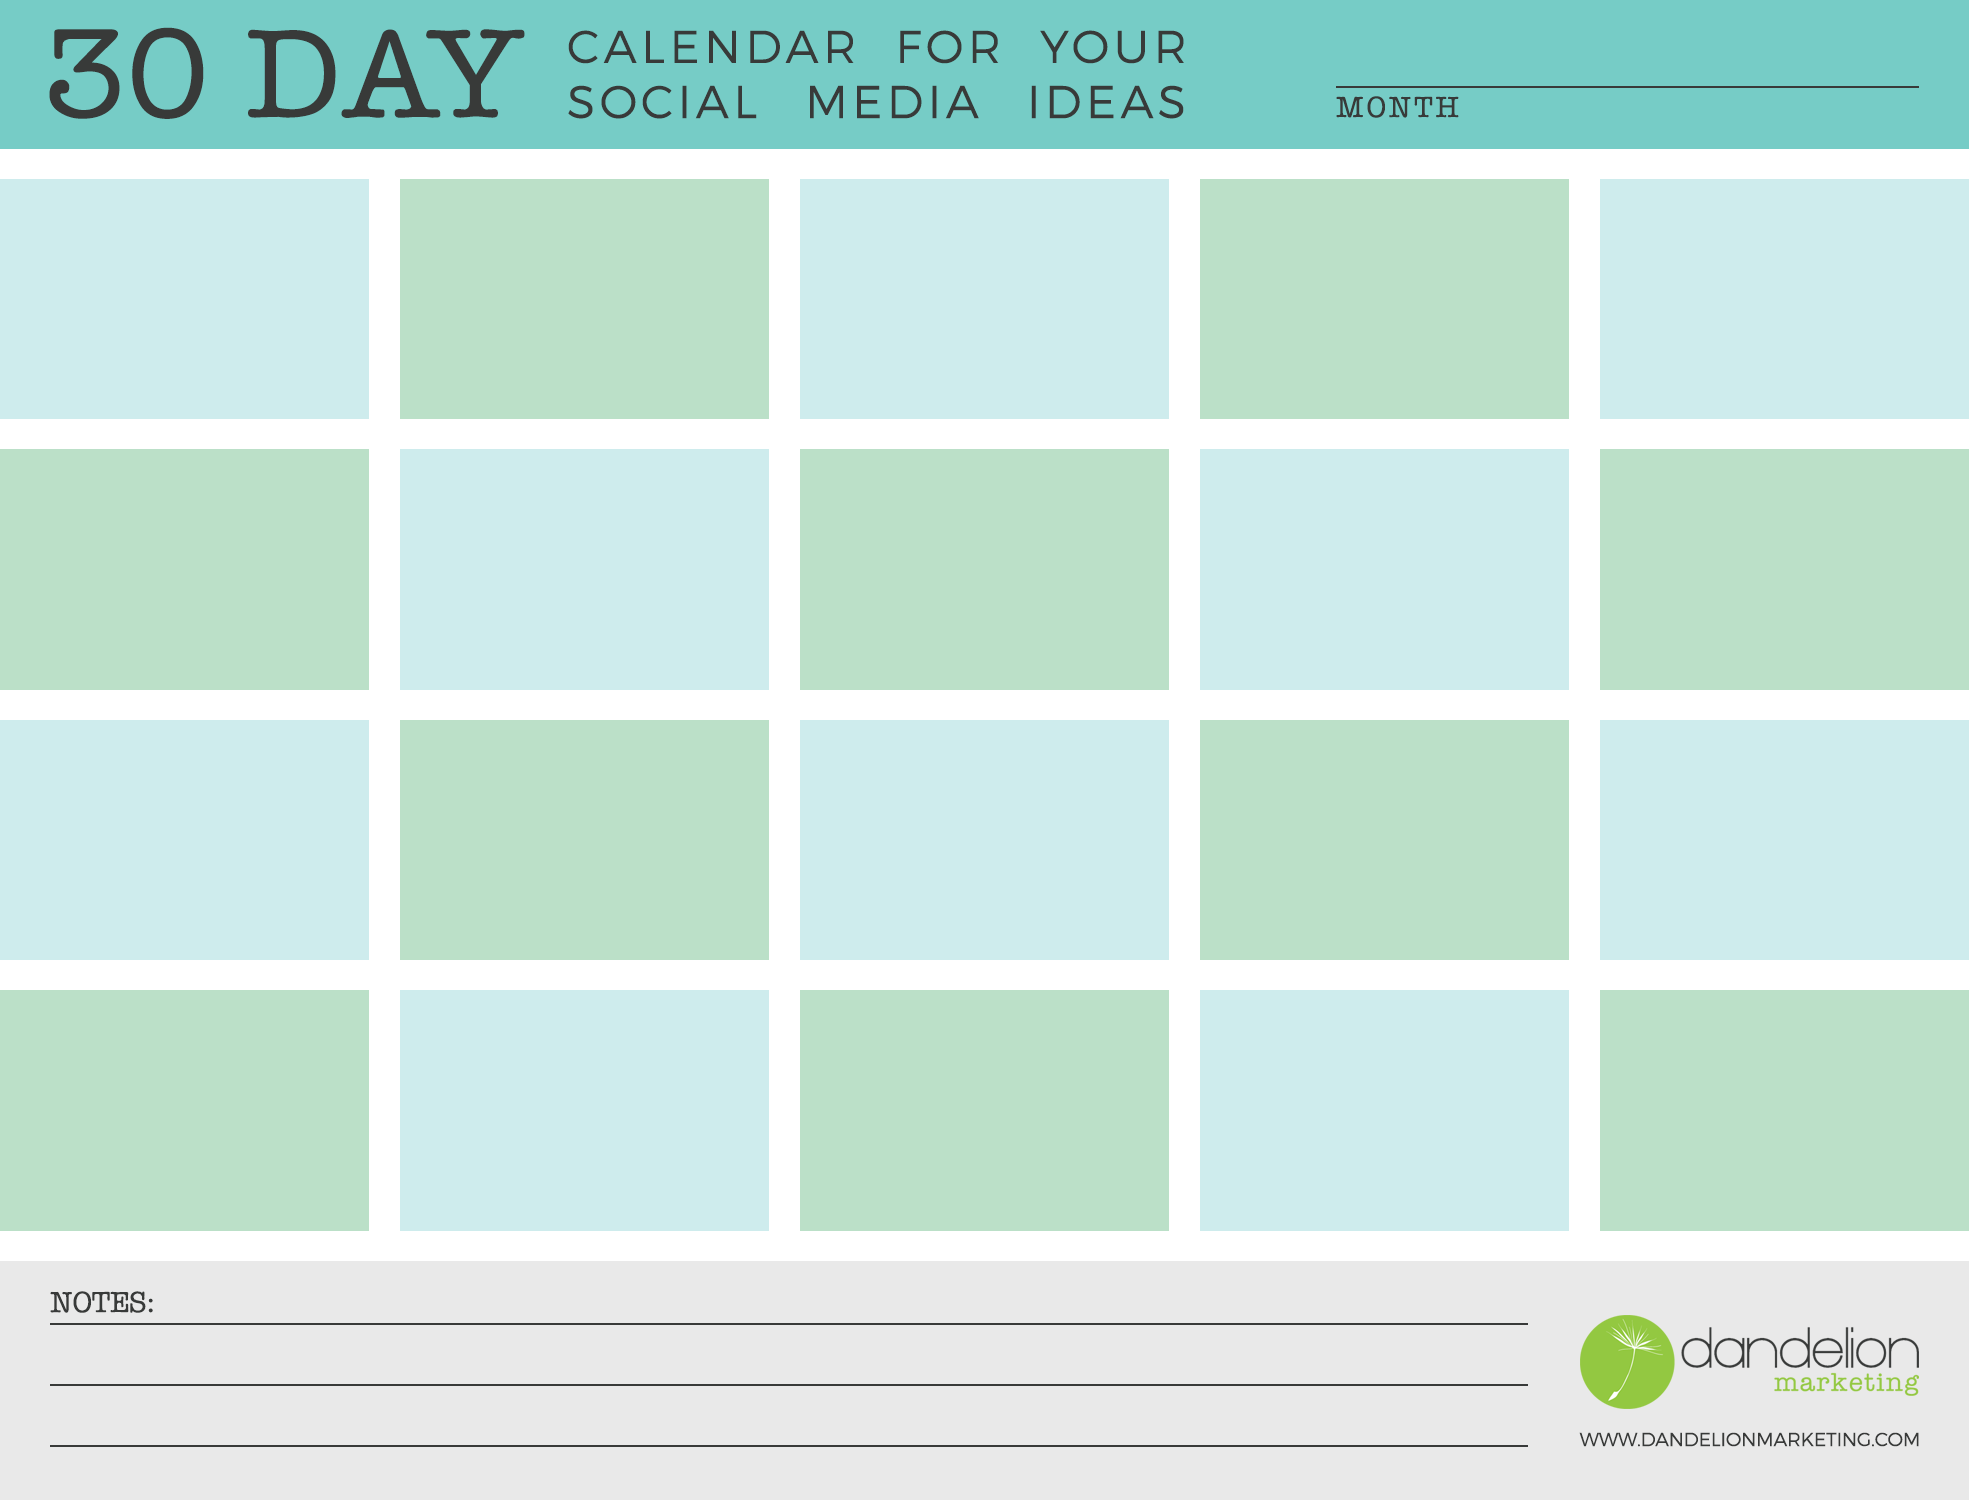 30 Day Calendar for Your Social Media Ideas